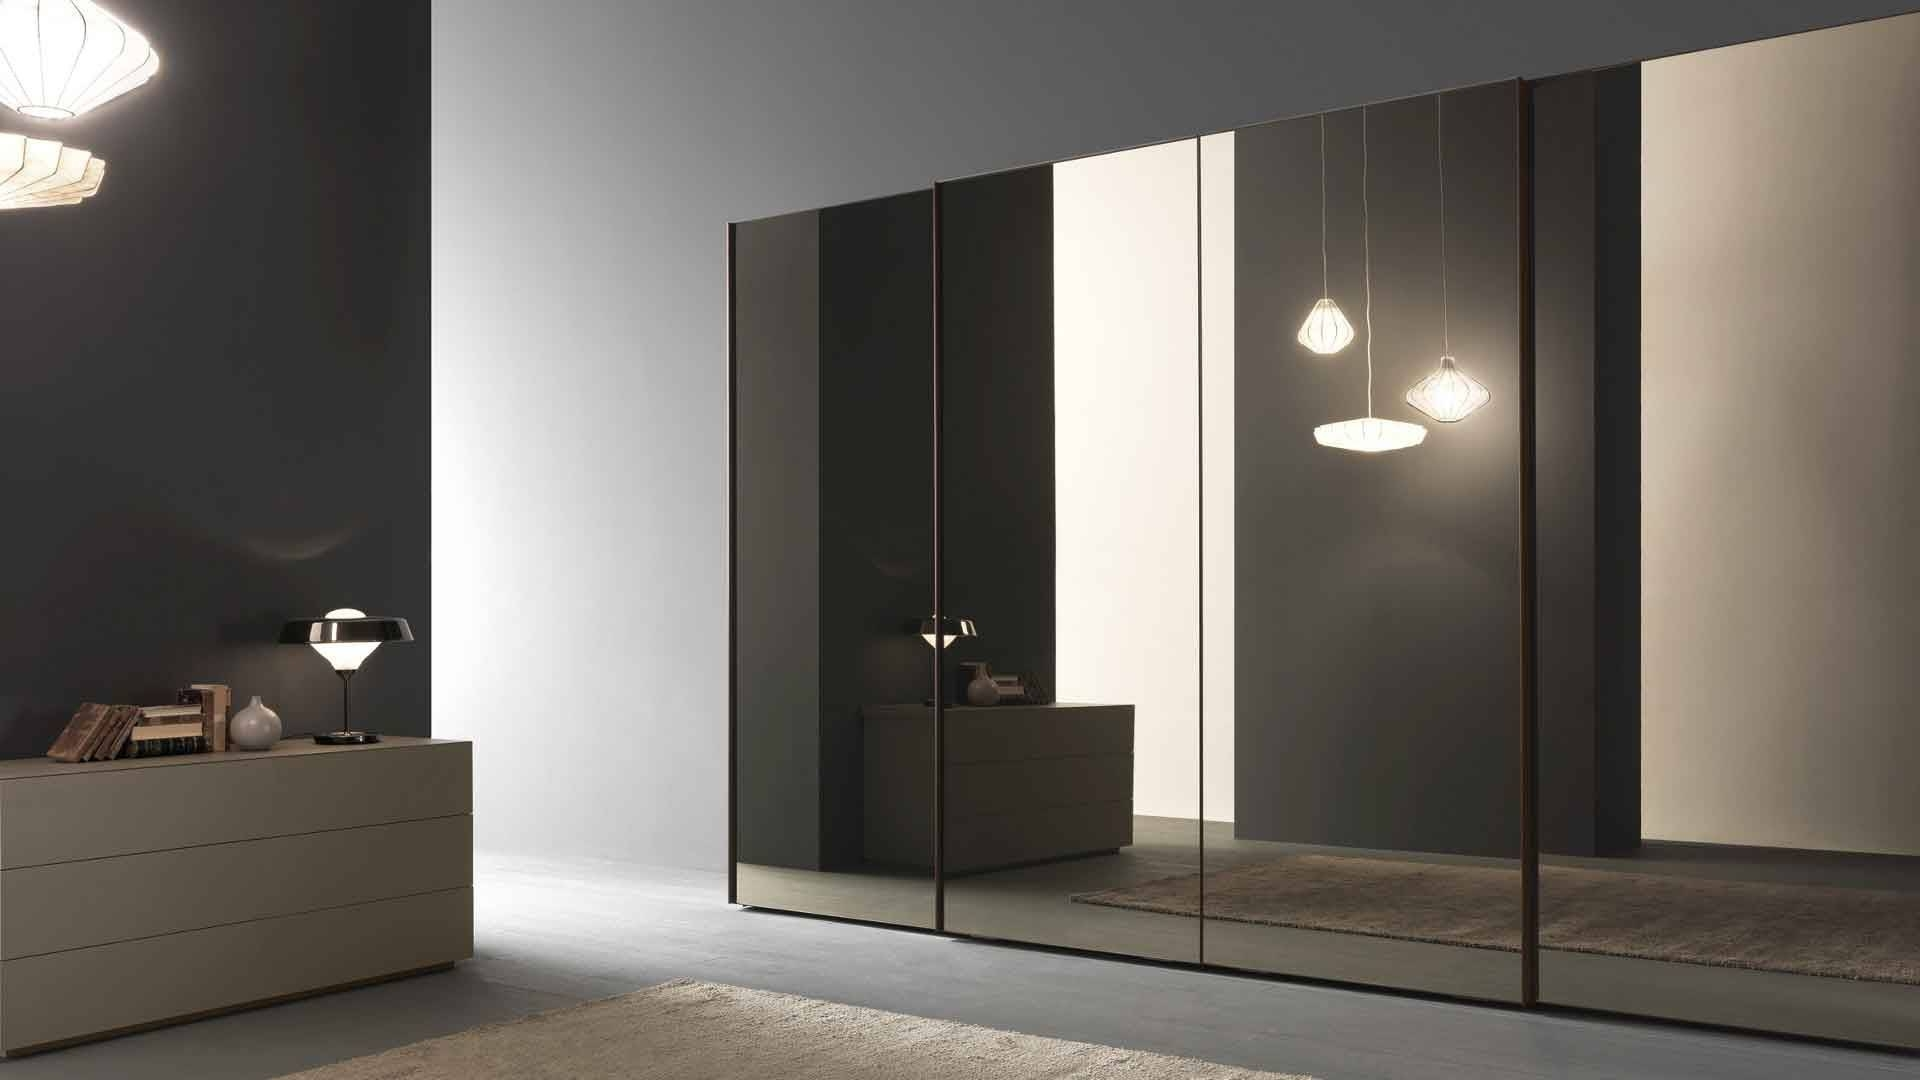 Glass Sliding Wardrobe Doors With Minimalist Style : Home Design with regard to Dark Wood Wardrobe Sliding Doors (Image 14 of 30)